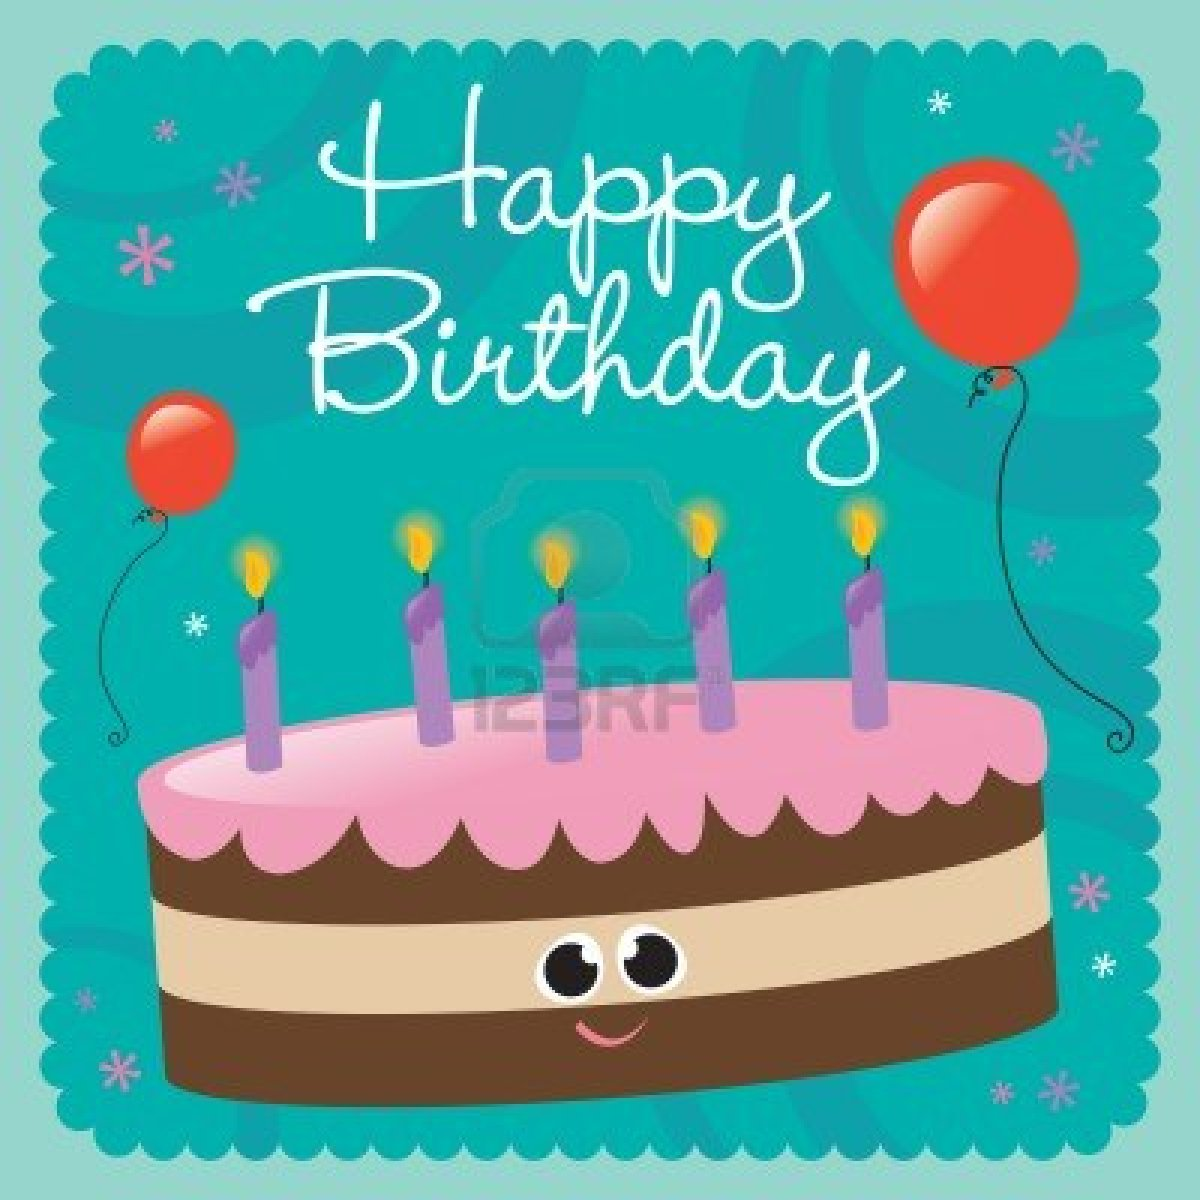 happy birthday cards pictures ; happy-birthday-card-images-some-colorful-cake-and-best-wishes-completing-with-simple-design-and-elegant-and-stunning-adding-by-blue-background